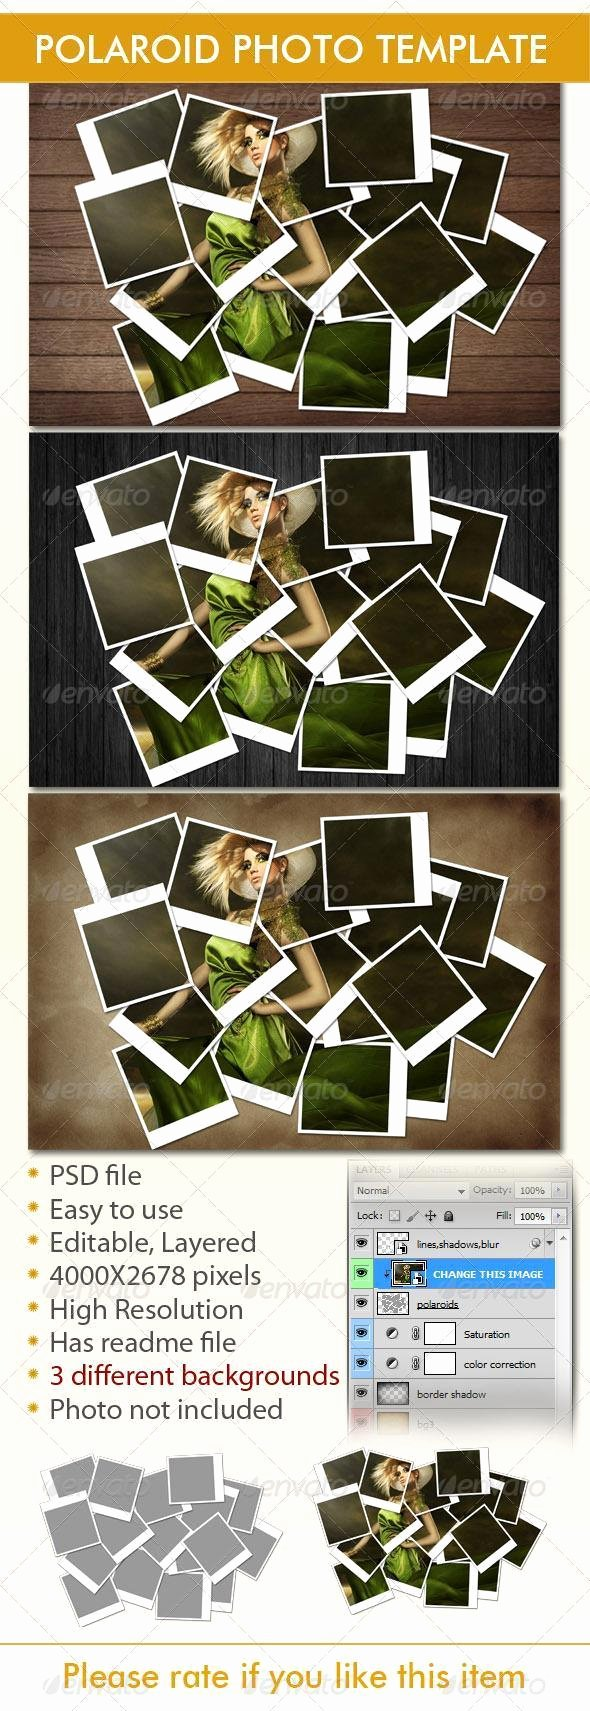 Polaroid Frame Psd Elegant 20 Polaroid Mockup Psd Templates Collection